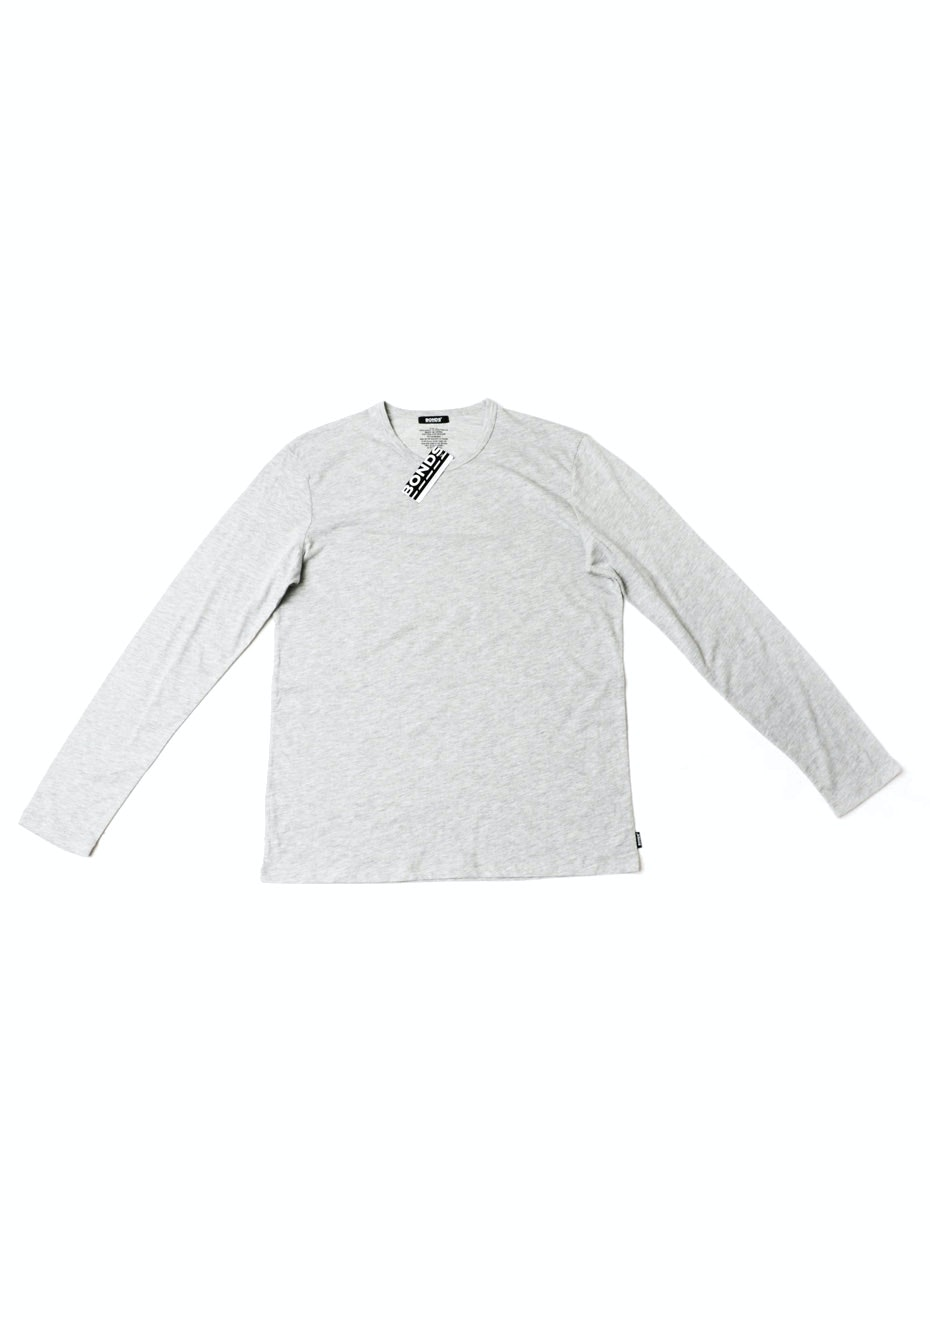 BONDS - Core Long Sleeve Tee - New Grey